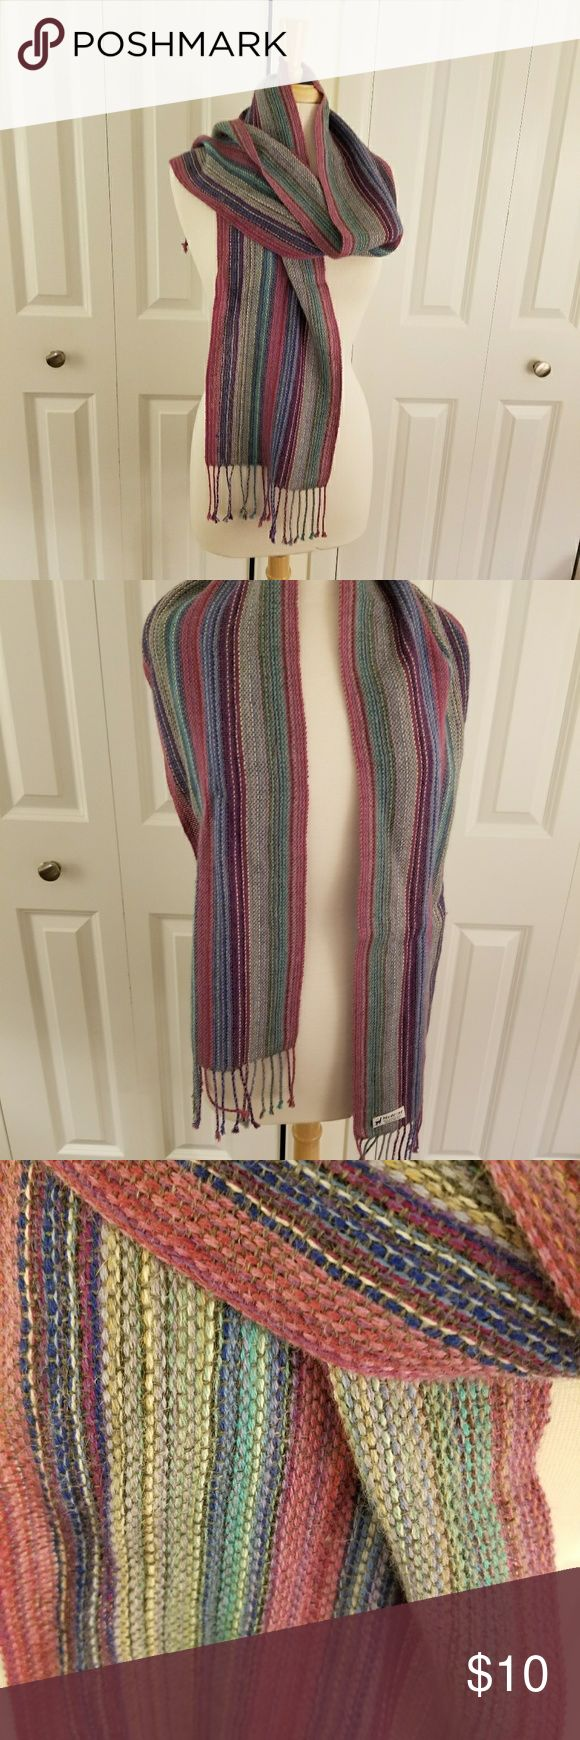 Striped Alpaca Scarf Bright, colorful woven alpaca scarf with fringe. noname Accessories Scarves & Wraps